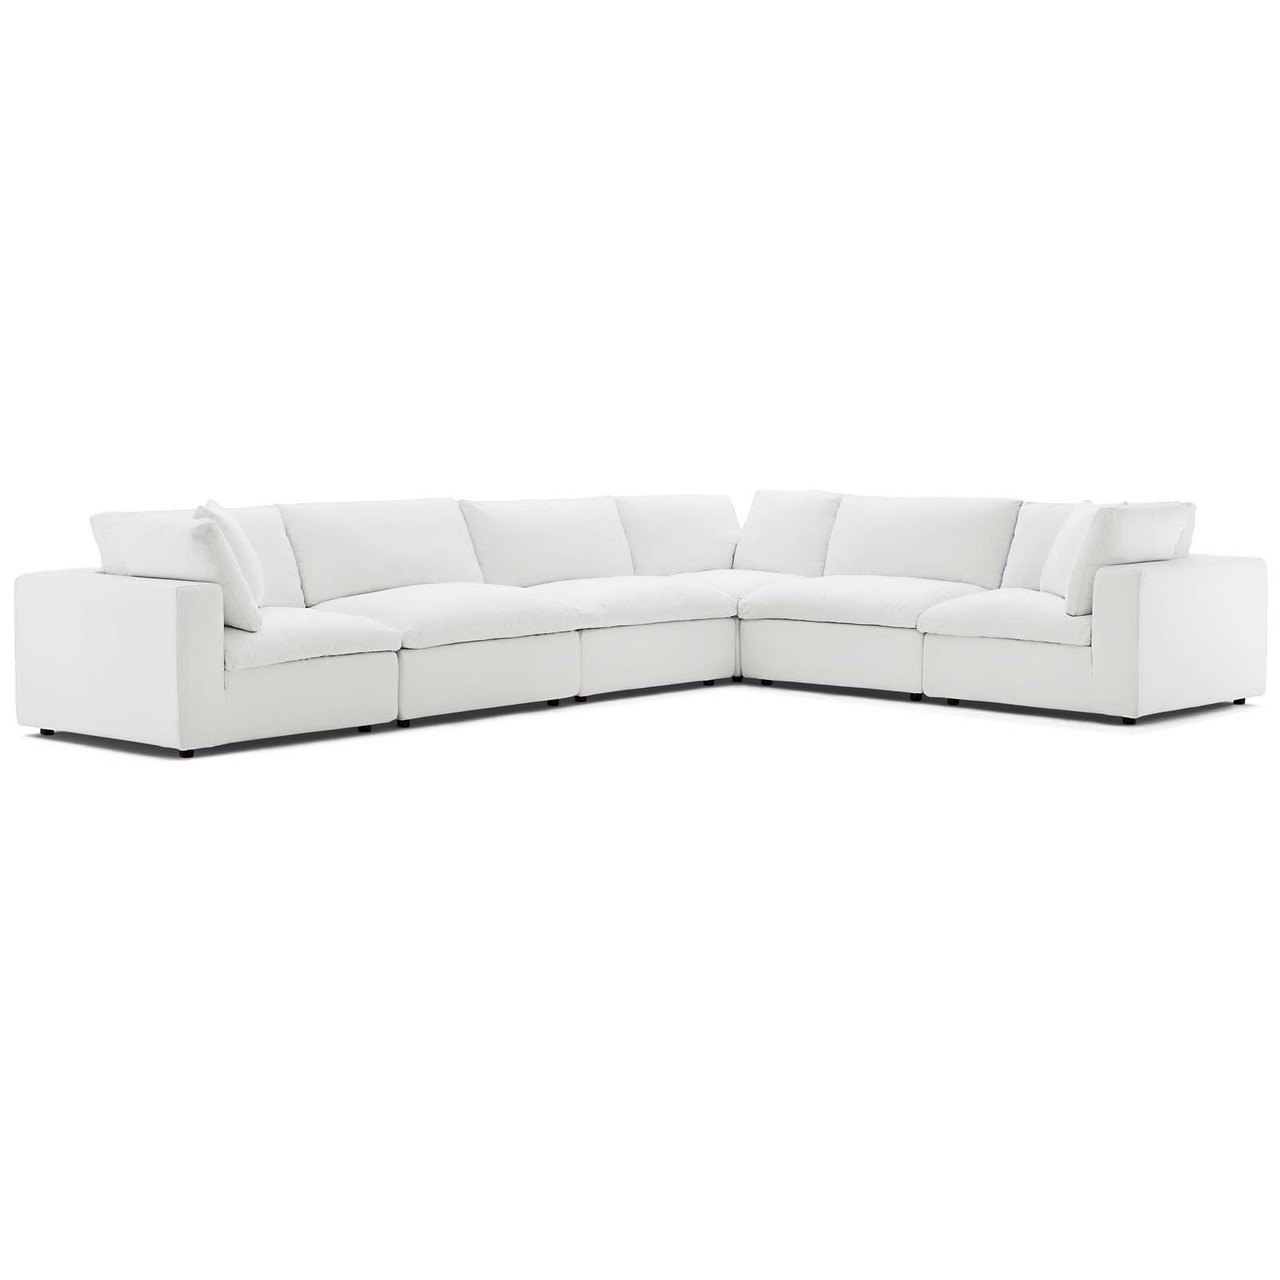 Commix Down Filled Overstuffed 6 Piece Sectional Sofa Set, Fabric, White  15753